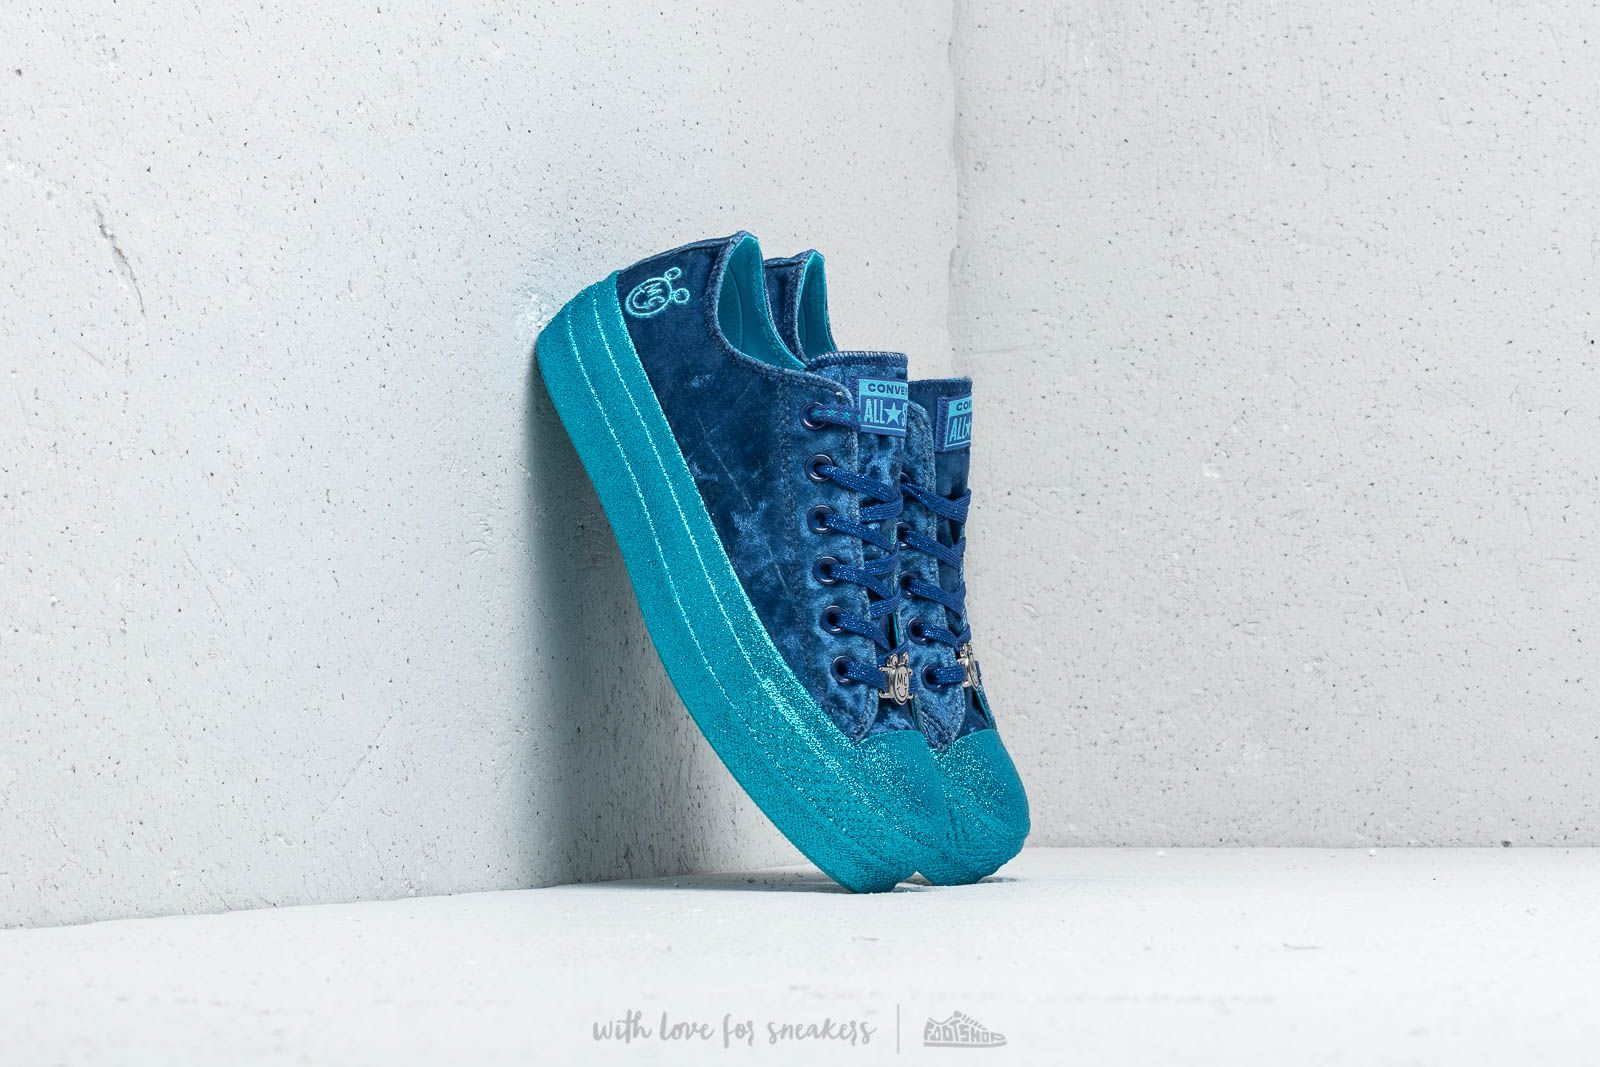 f66560c6bba645 Converse x Miley Cyrus Chuck Taylor All Star Lift Ox Gnarly Blue  Blue   Gnarly